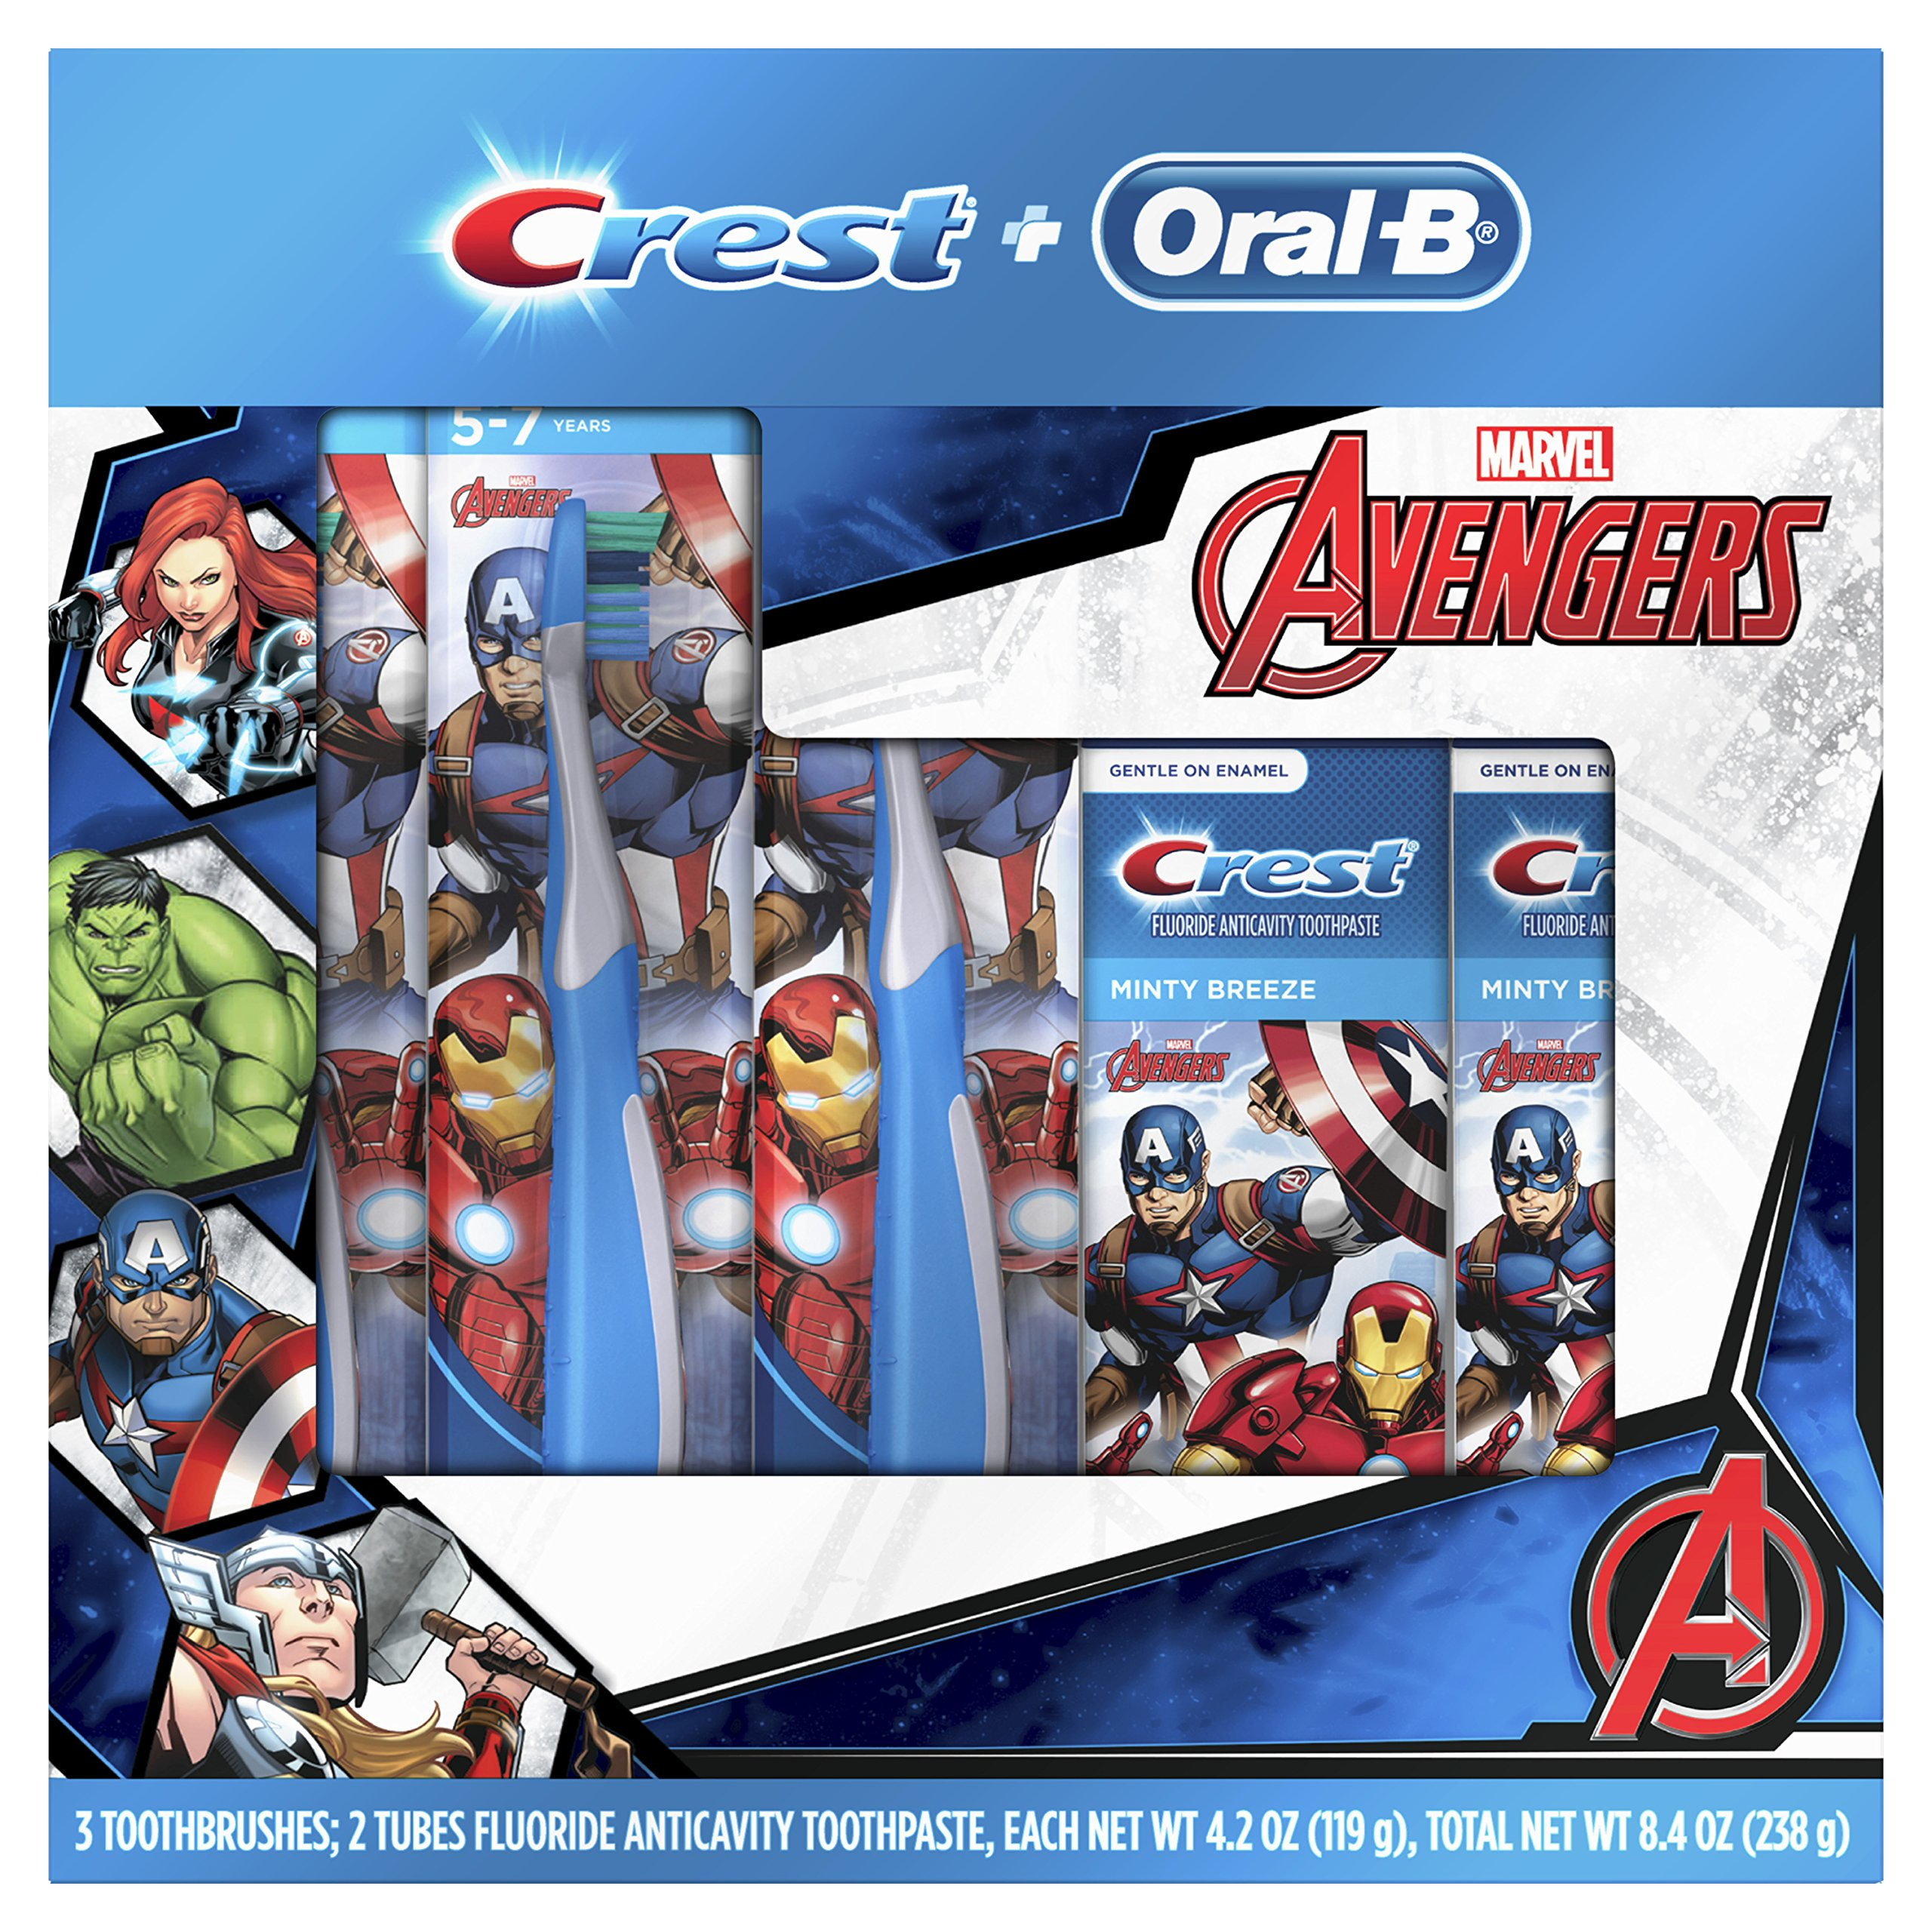 Oral-B and Crest Kids Holiday Pack Featuring Marvel's Avengers, Kids Two Fluoride Anticavity Toothpastes and Three Toothbrushes